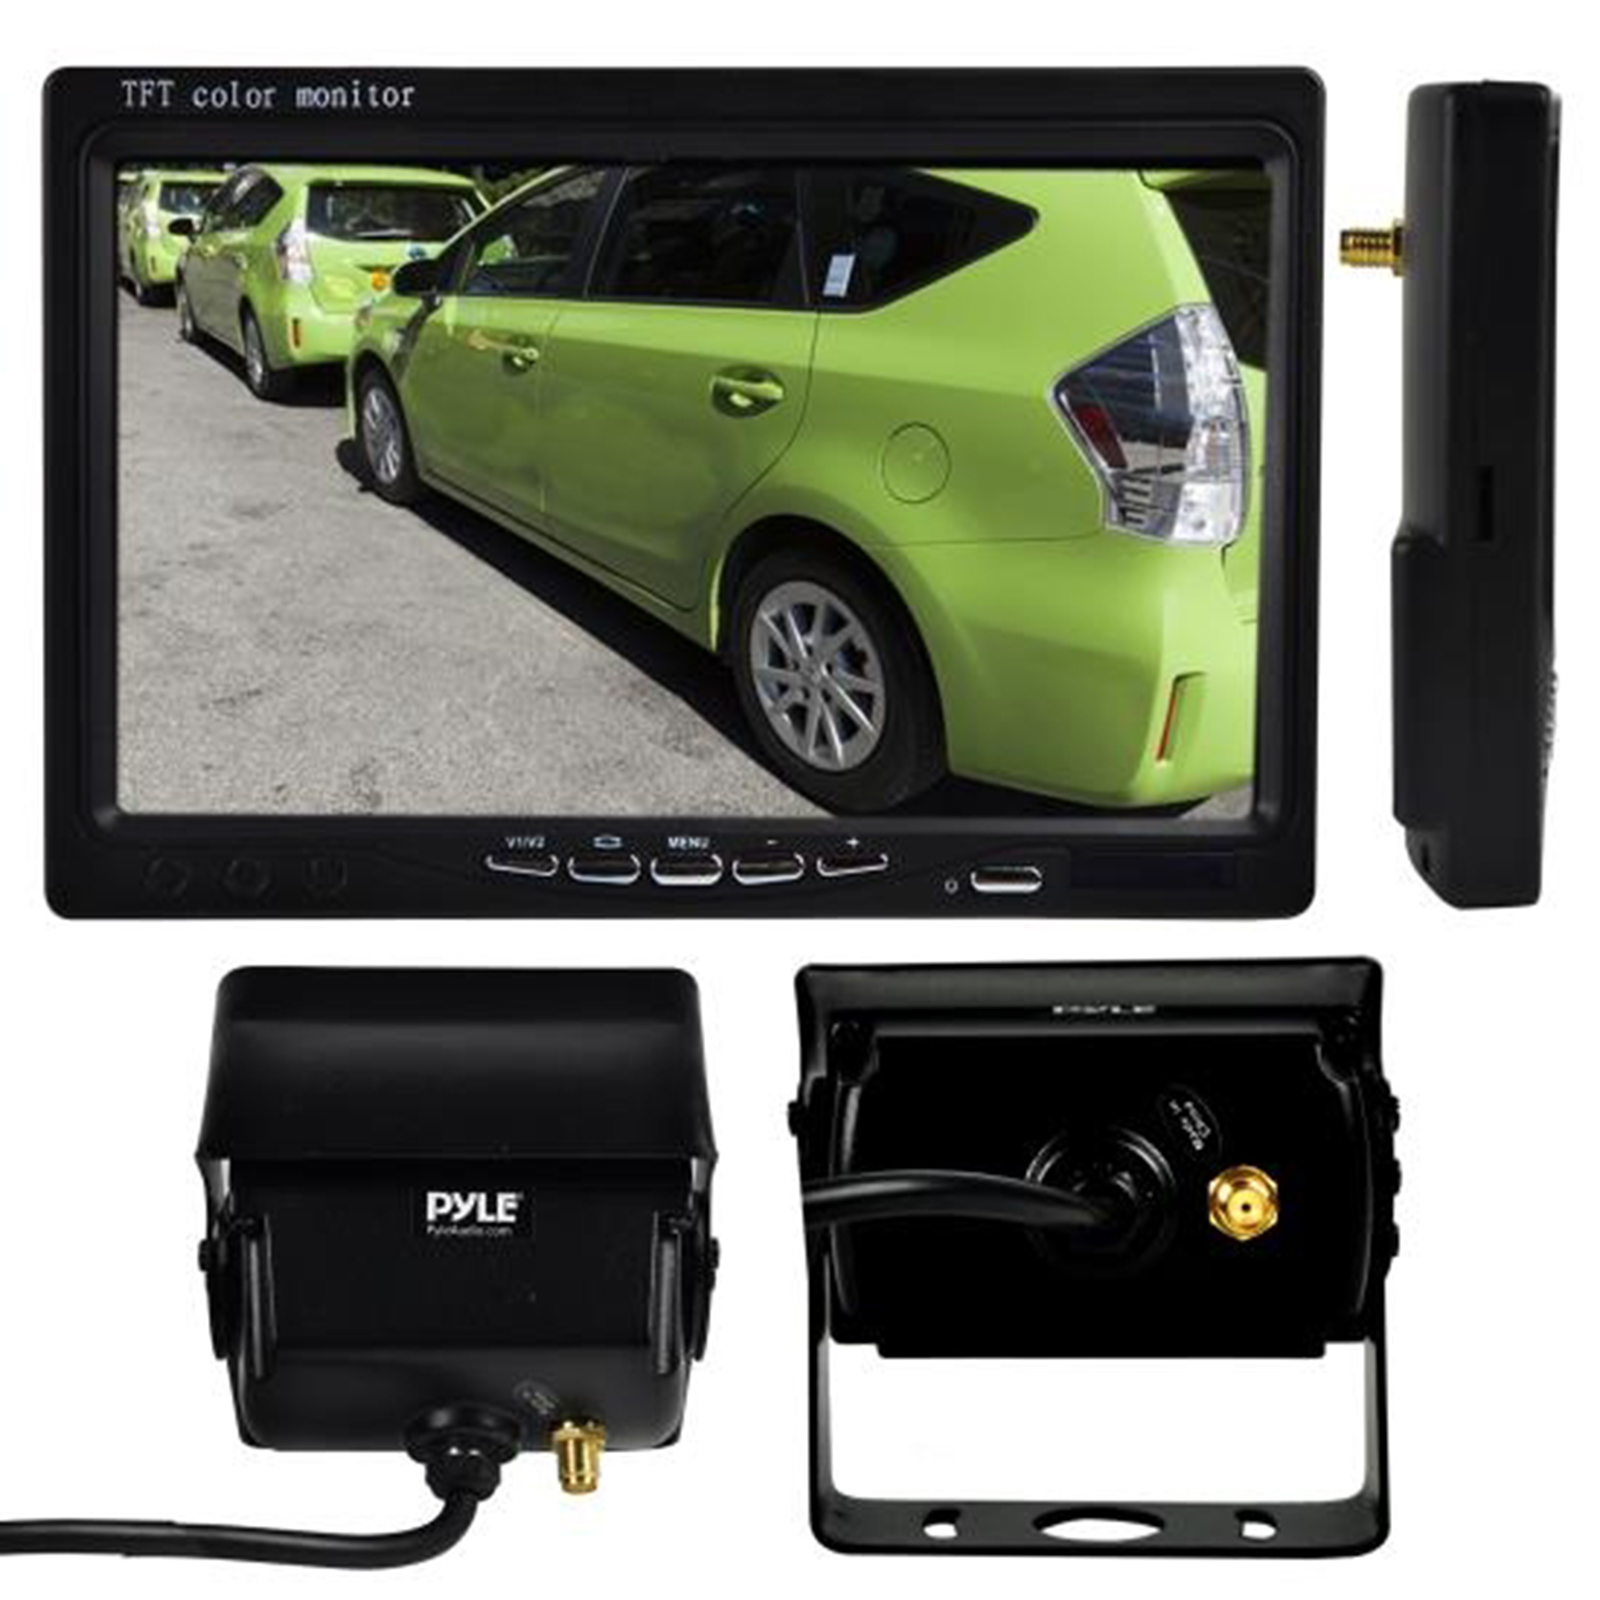 "cord free Weatherproof Rearview Backup Camera & Monitor Video System, Commercial Grade Night Vis Camera, 7"" Display, Dual DC 12-24V for Bus, Truck, Trailer, Van"